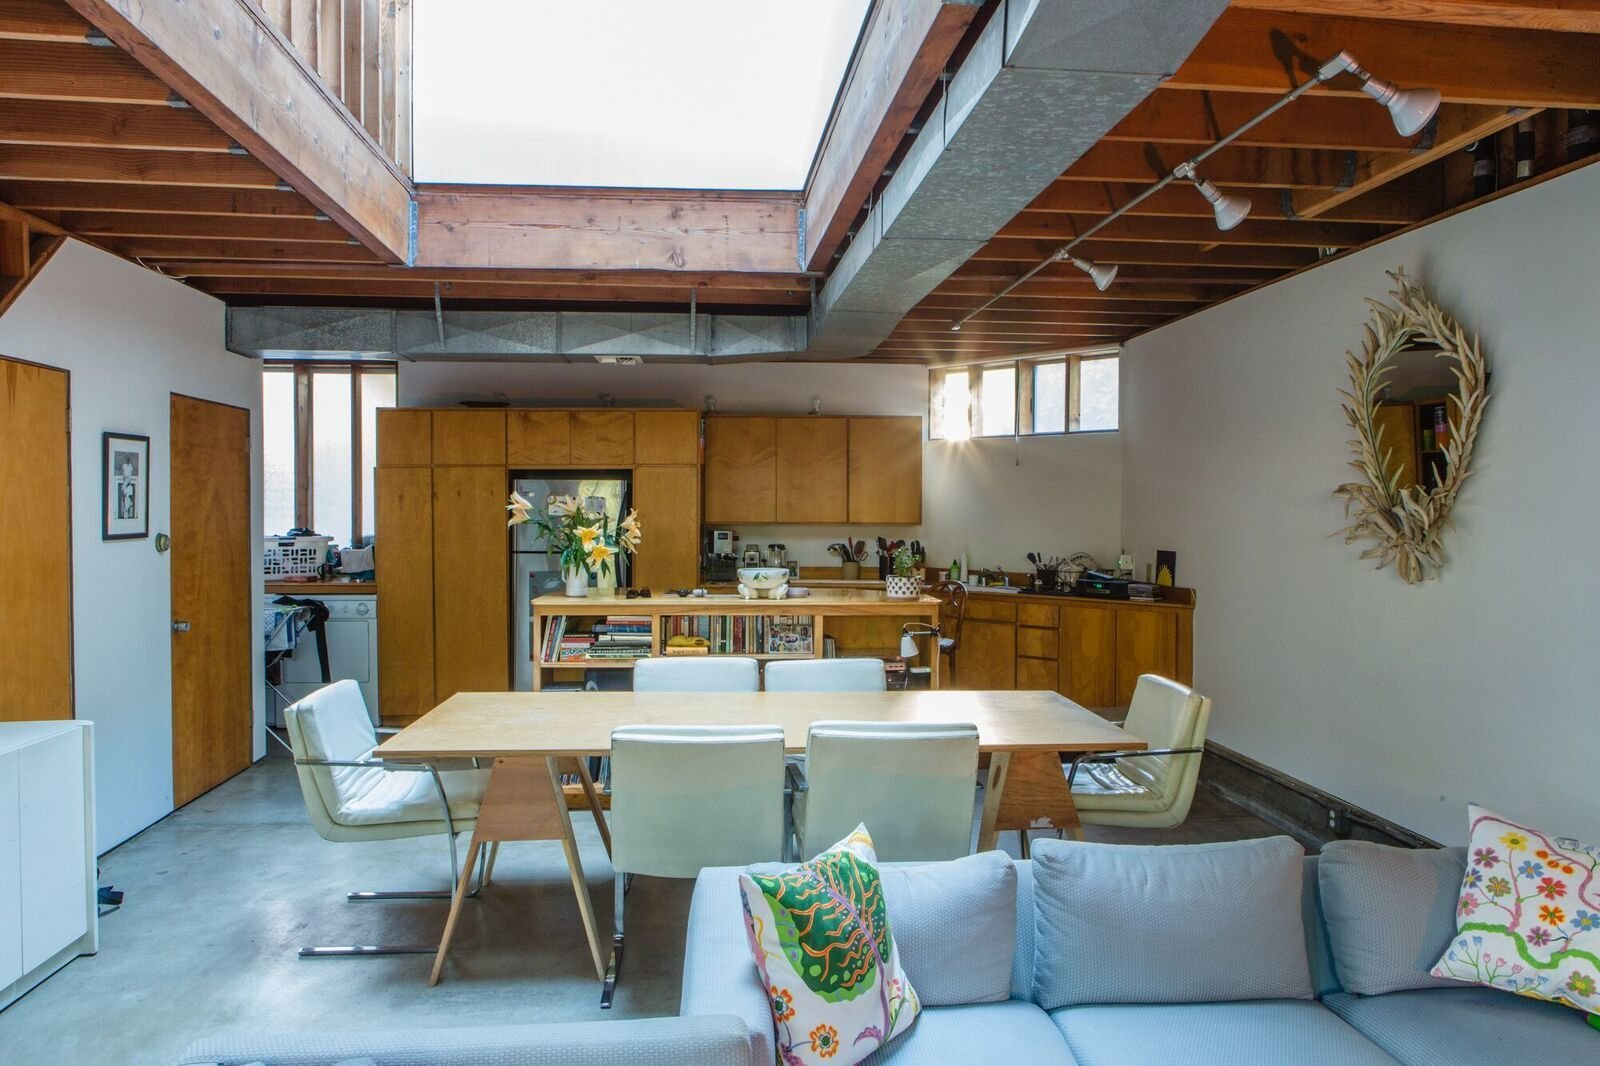 When renting an apartment in Frank Gehry's Spiller House, Kristin Grant Fowler and William Fowler chose simple furnishing that relate back to the architect's humble material palette. The tabletop is set on Burro Brand saw horses—the same ones Gehry uses in his office. The sofa was designed by Kristin's grandfather, Park Avenue interior designer Hector Grant; the mirror was also a gift from him. The cushions are by Josef Frank.  Photo 3 of 12 in Peek Inside the Frank Gehry Rental of an Emerging L.A. Furniture Designer